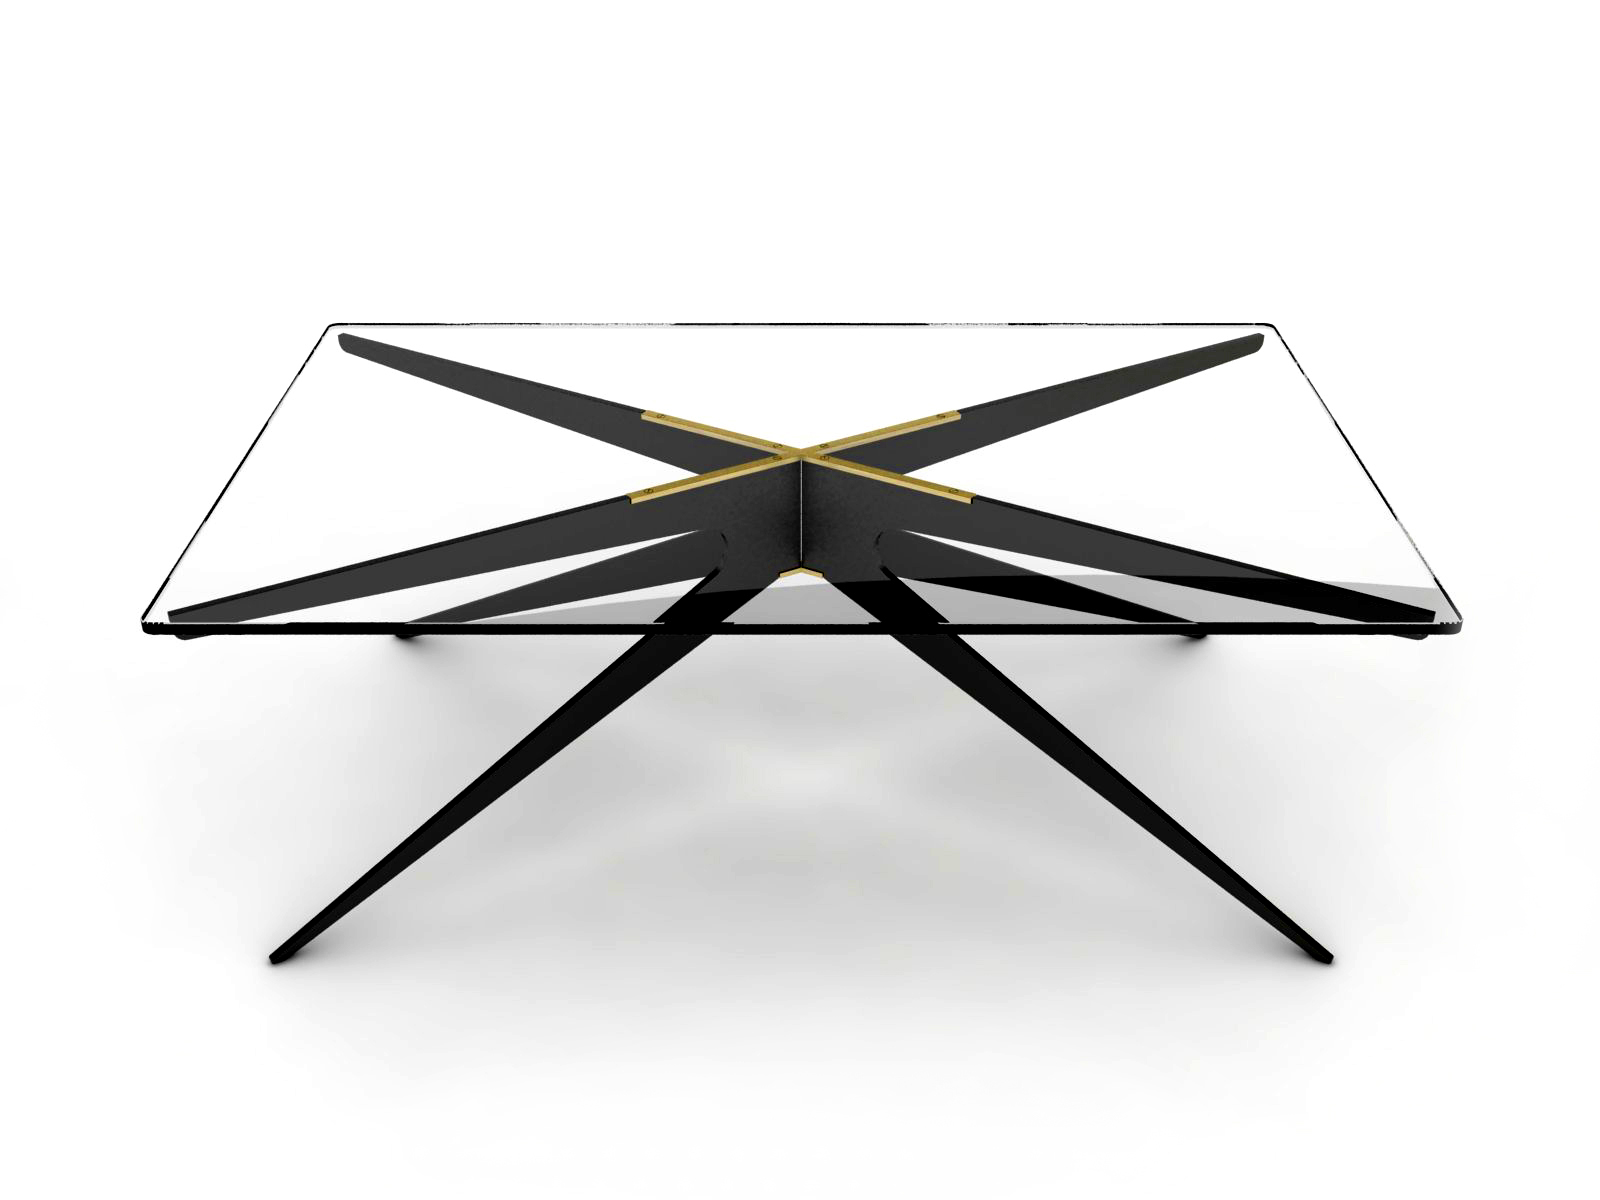 DEAN Rectnagular Coffee Table - Black: Clear.jpg